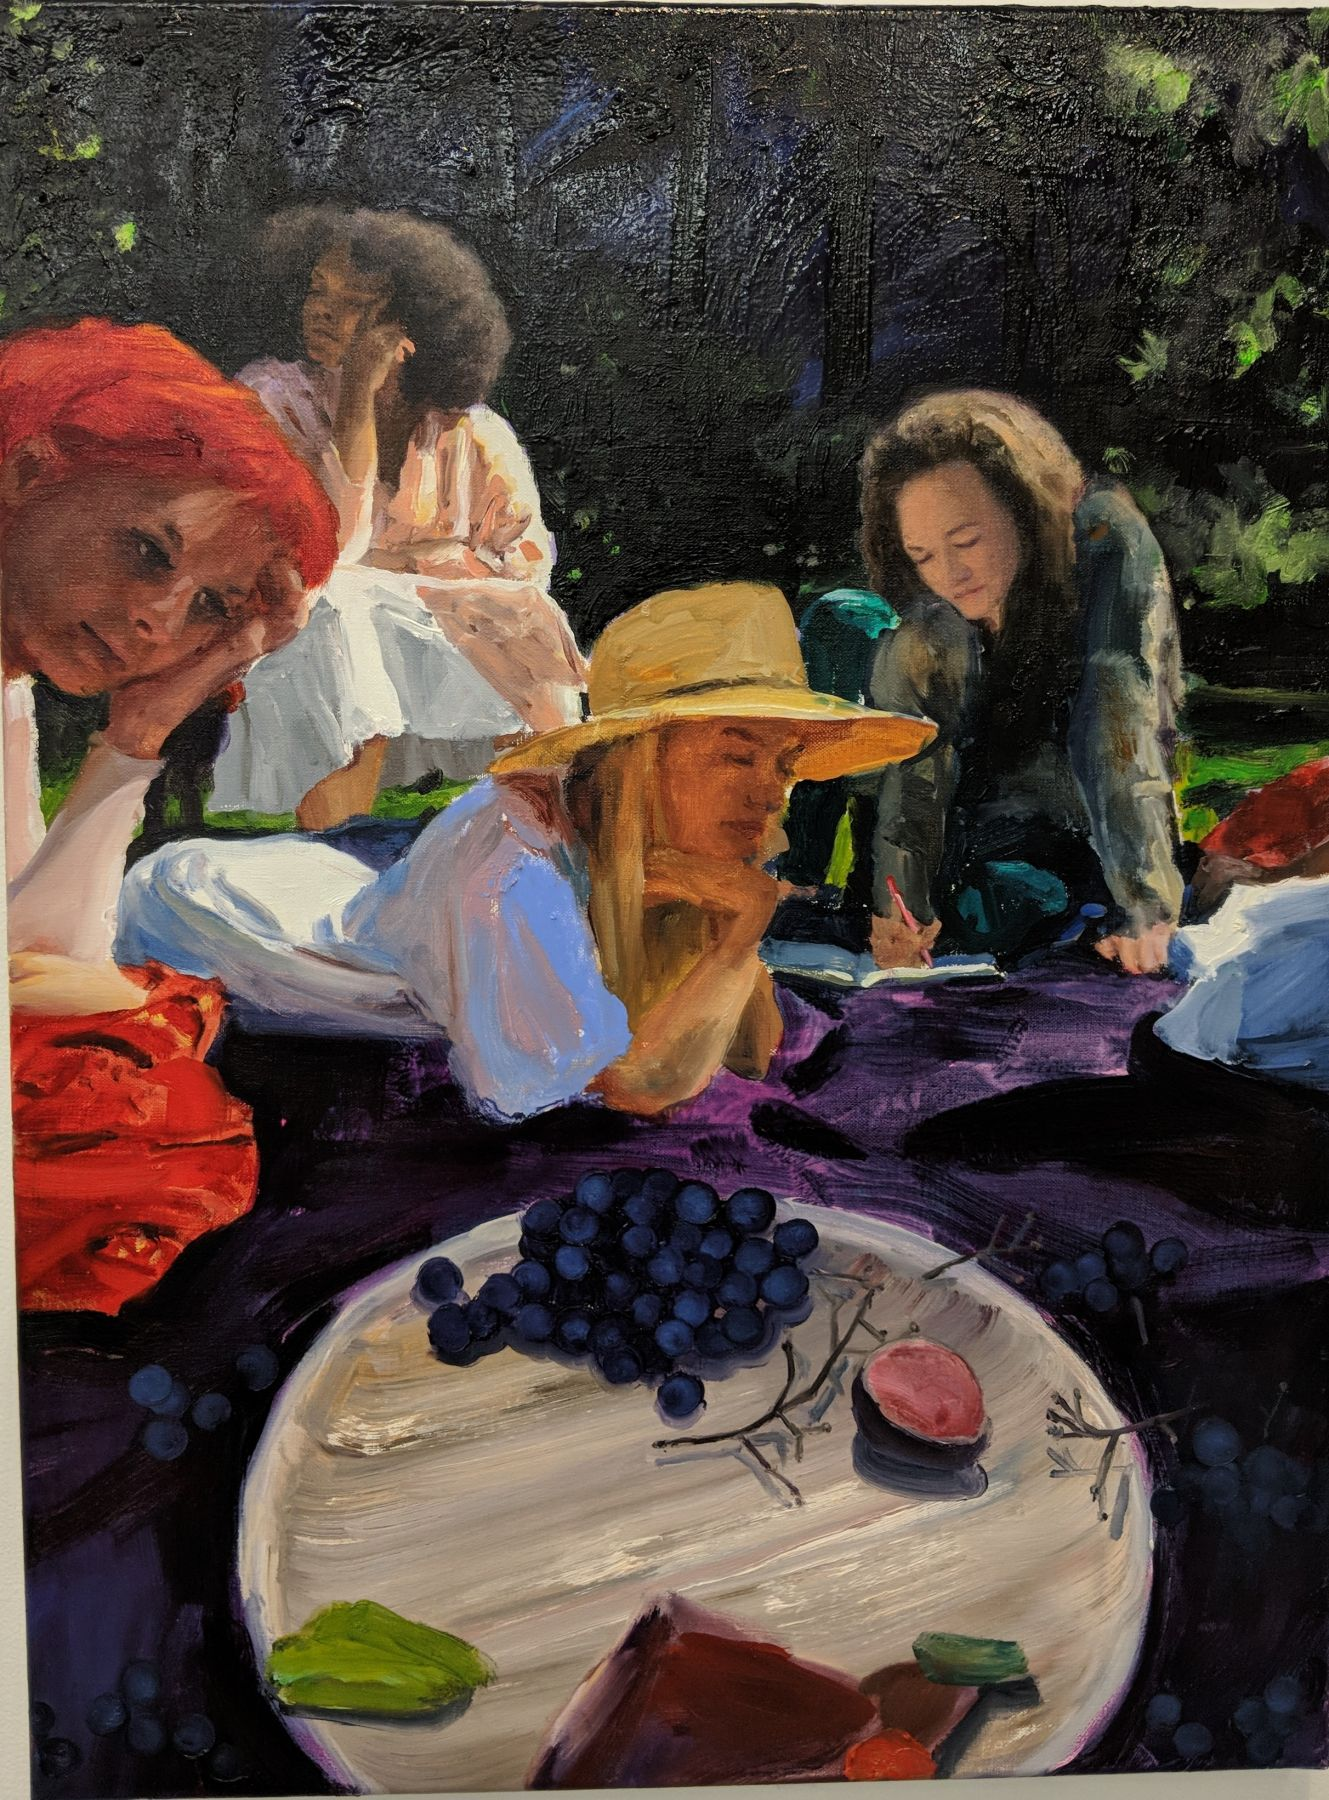 Jenna Gribbon, A Picnic I Attended That Didn't Seem Real, 2018